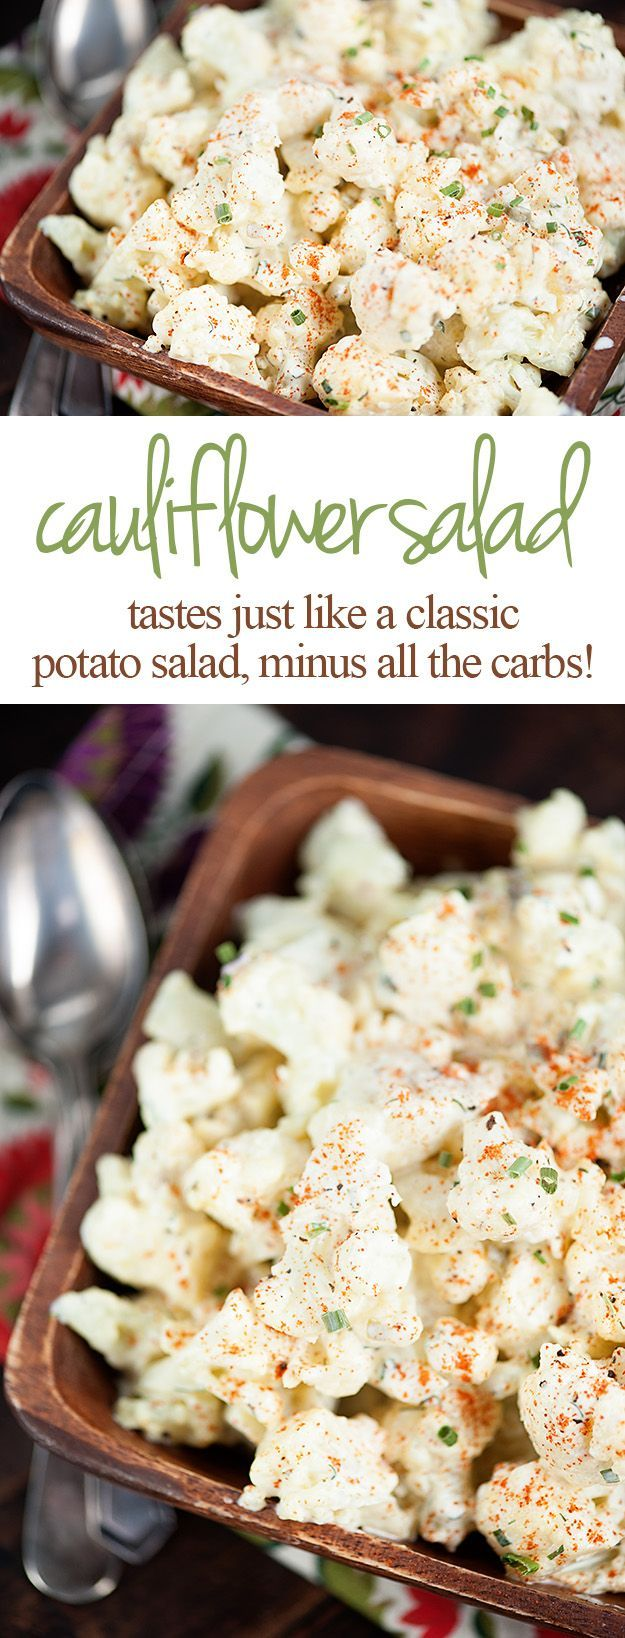 This low carb, keto recipe for potato salad tastes JUST like regular potato salad! Even the carb lovers will enjoy this cauliflower salad! 웃 유 Pls follow me for more awesome recipes.